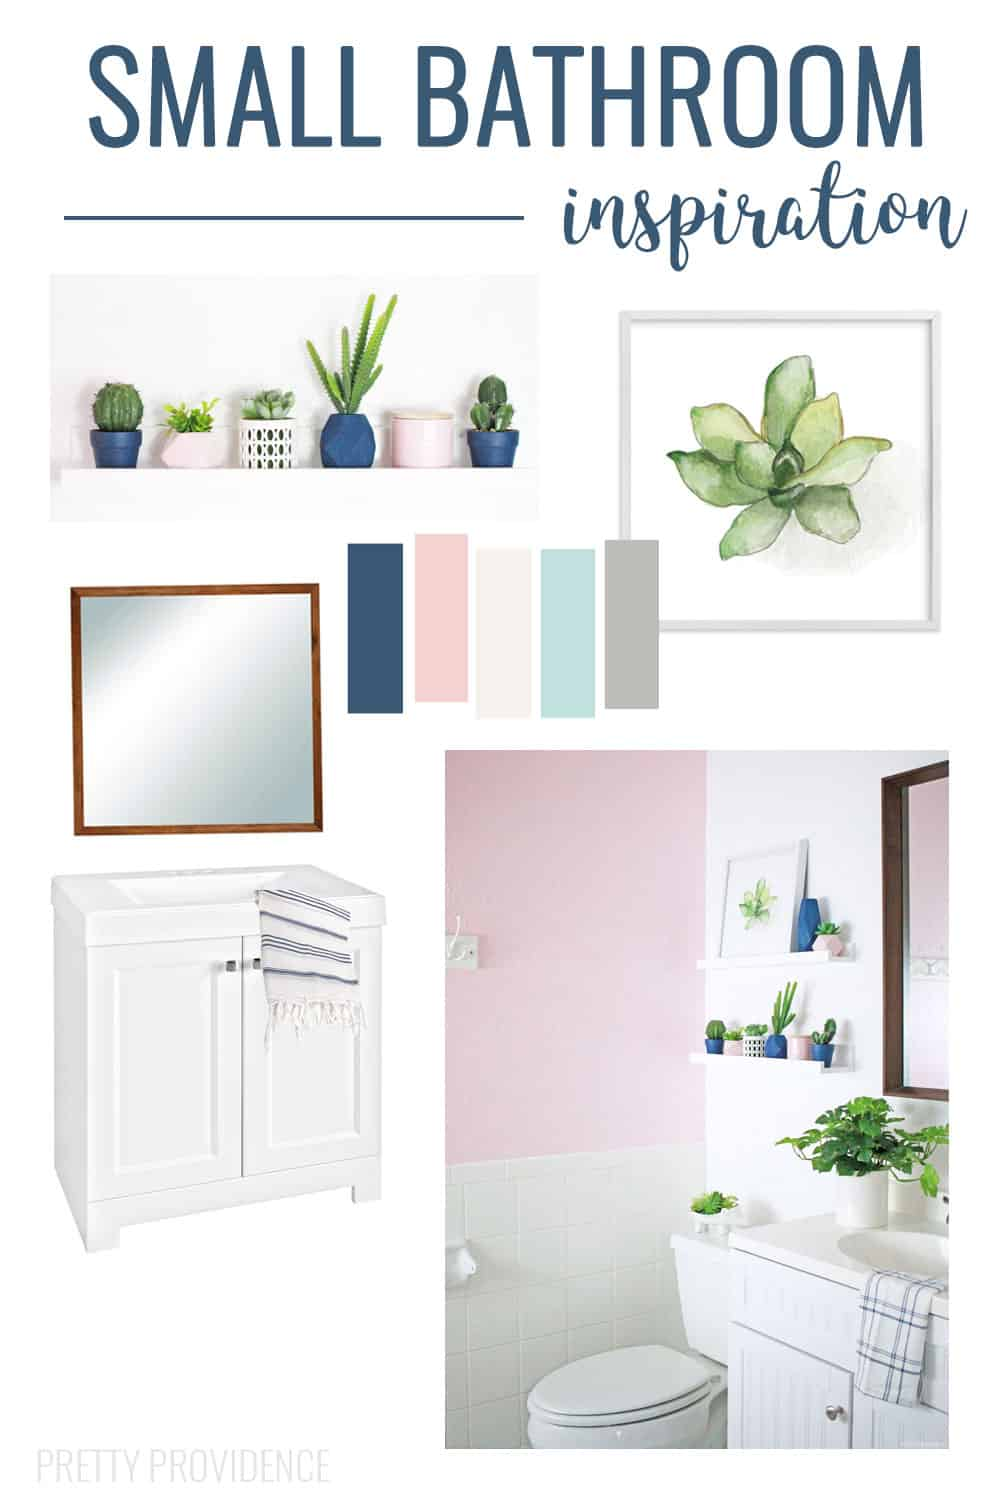 Small Bathroom Inspiration! Pink and Navy